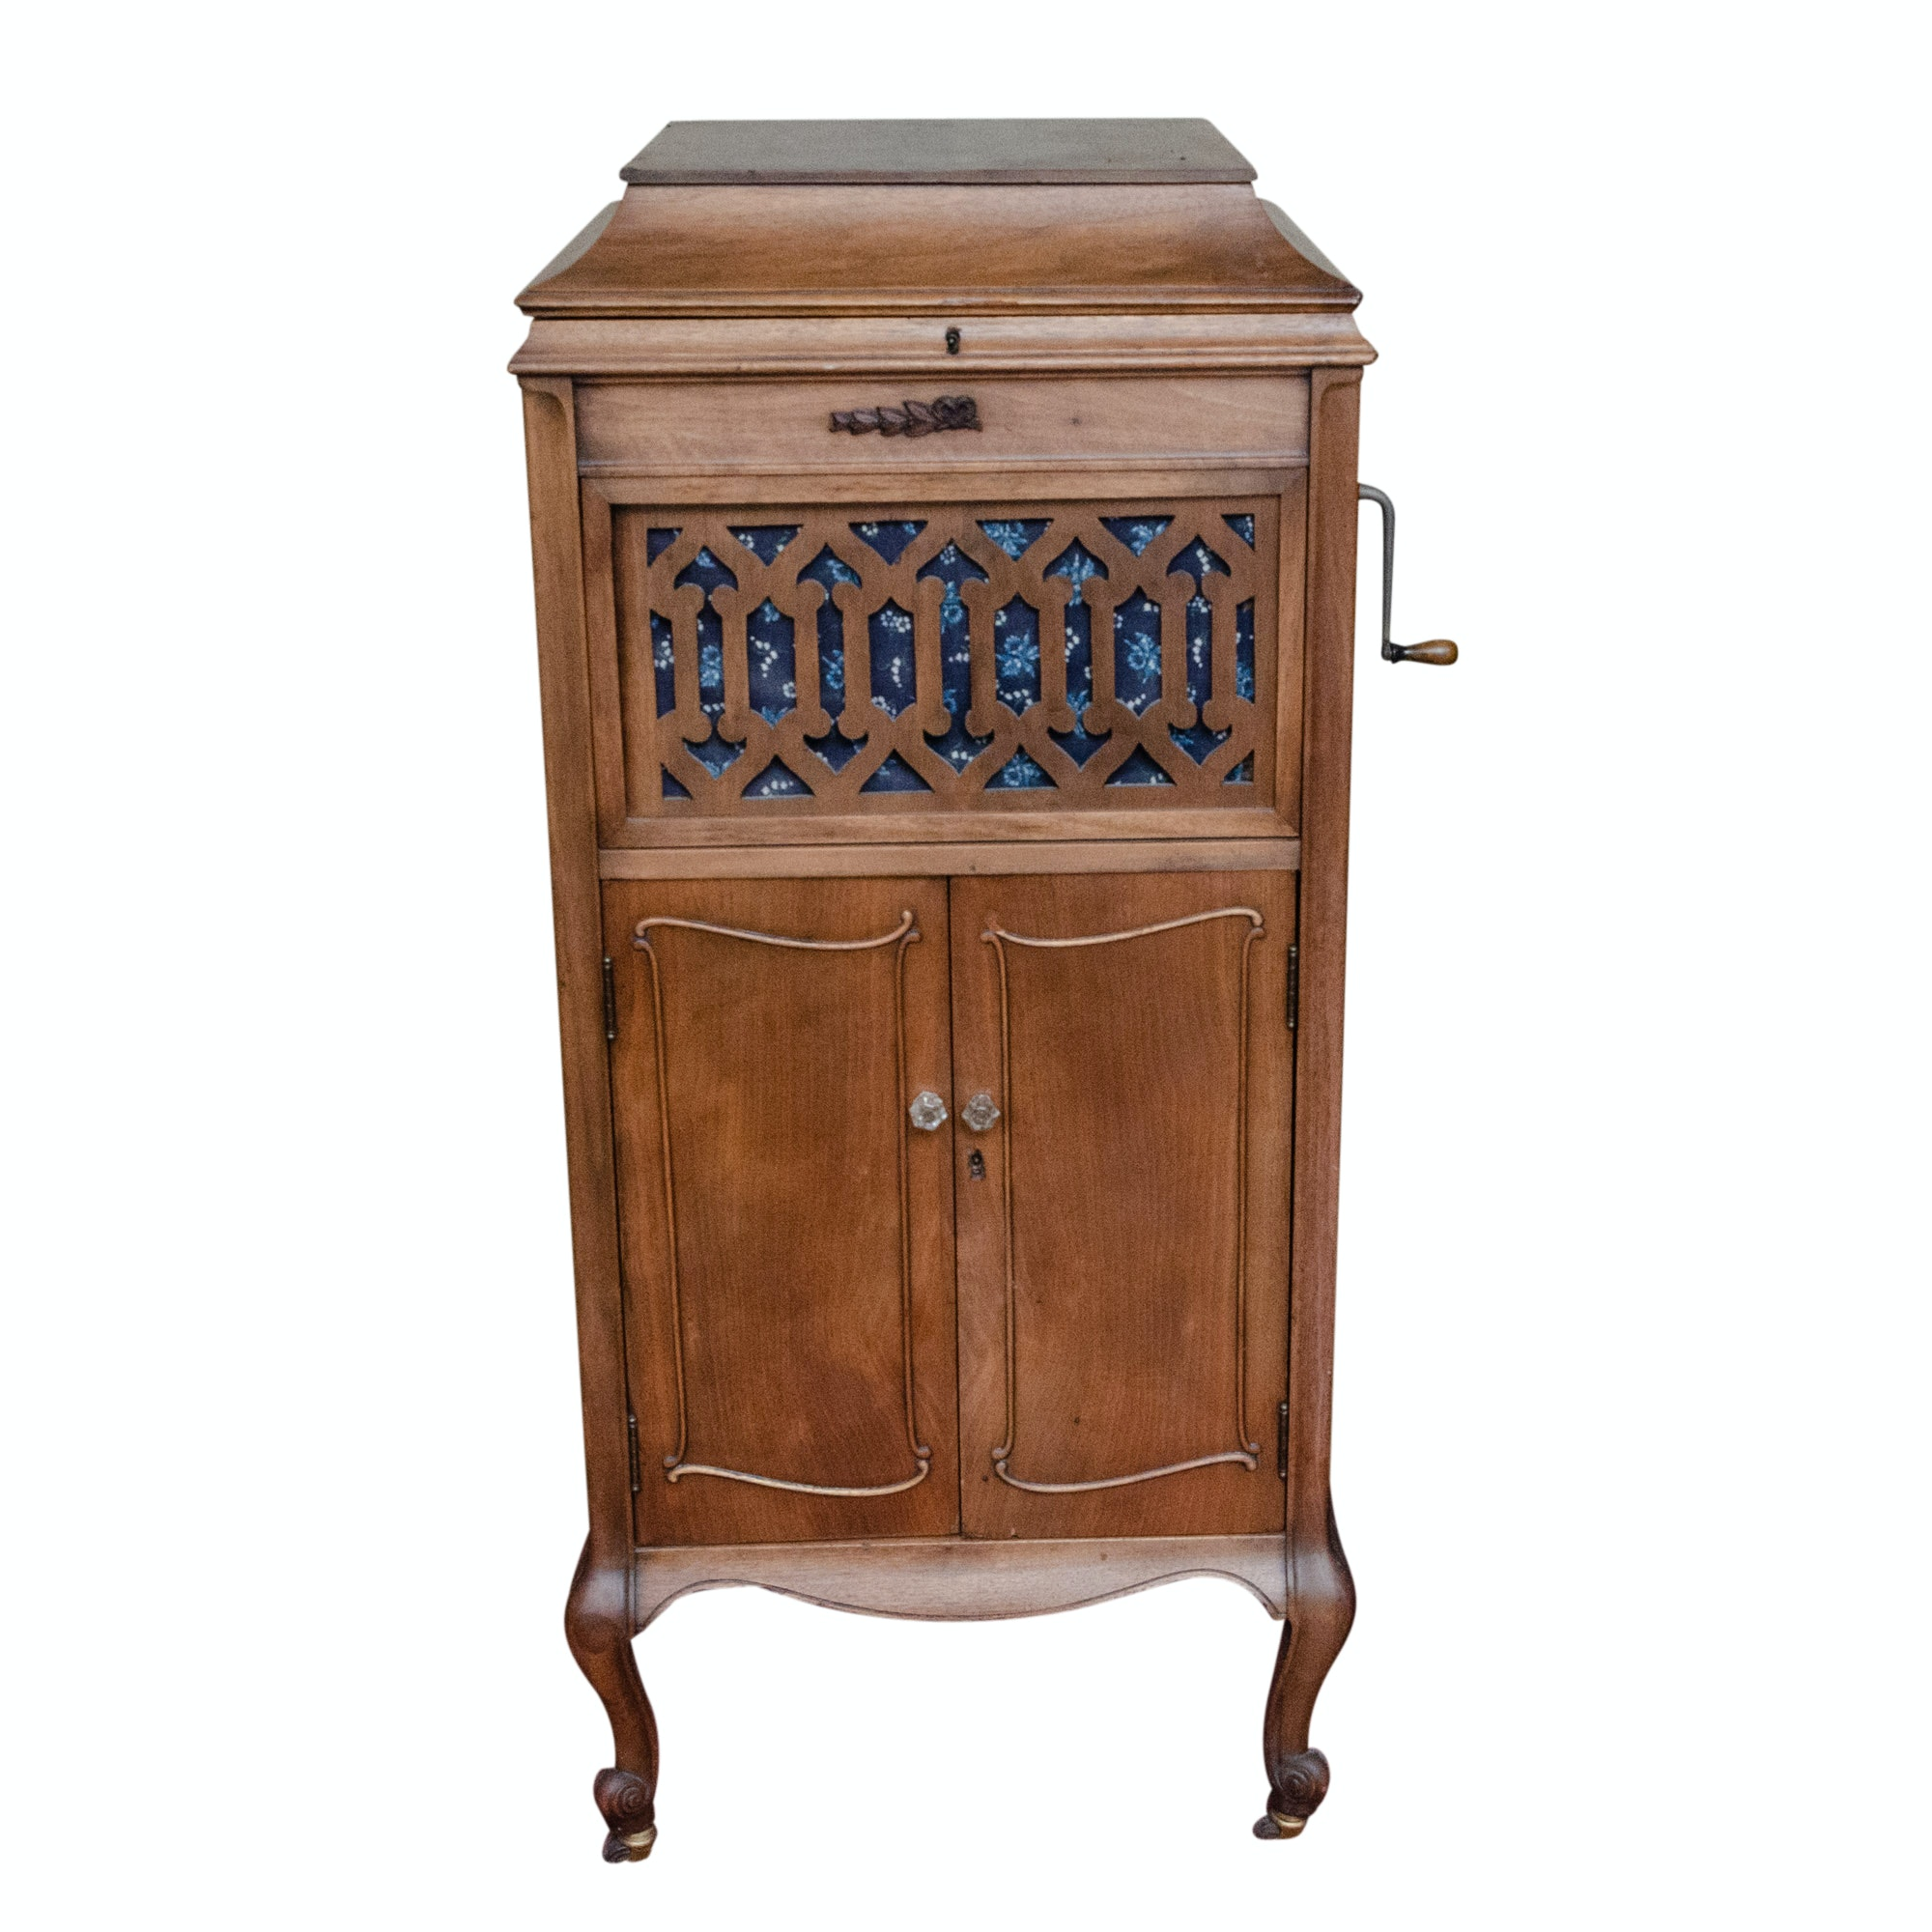 Antique Empire Phonograph in Cherry Wood Cabinet